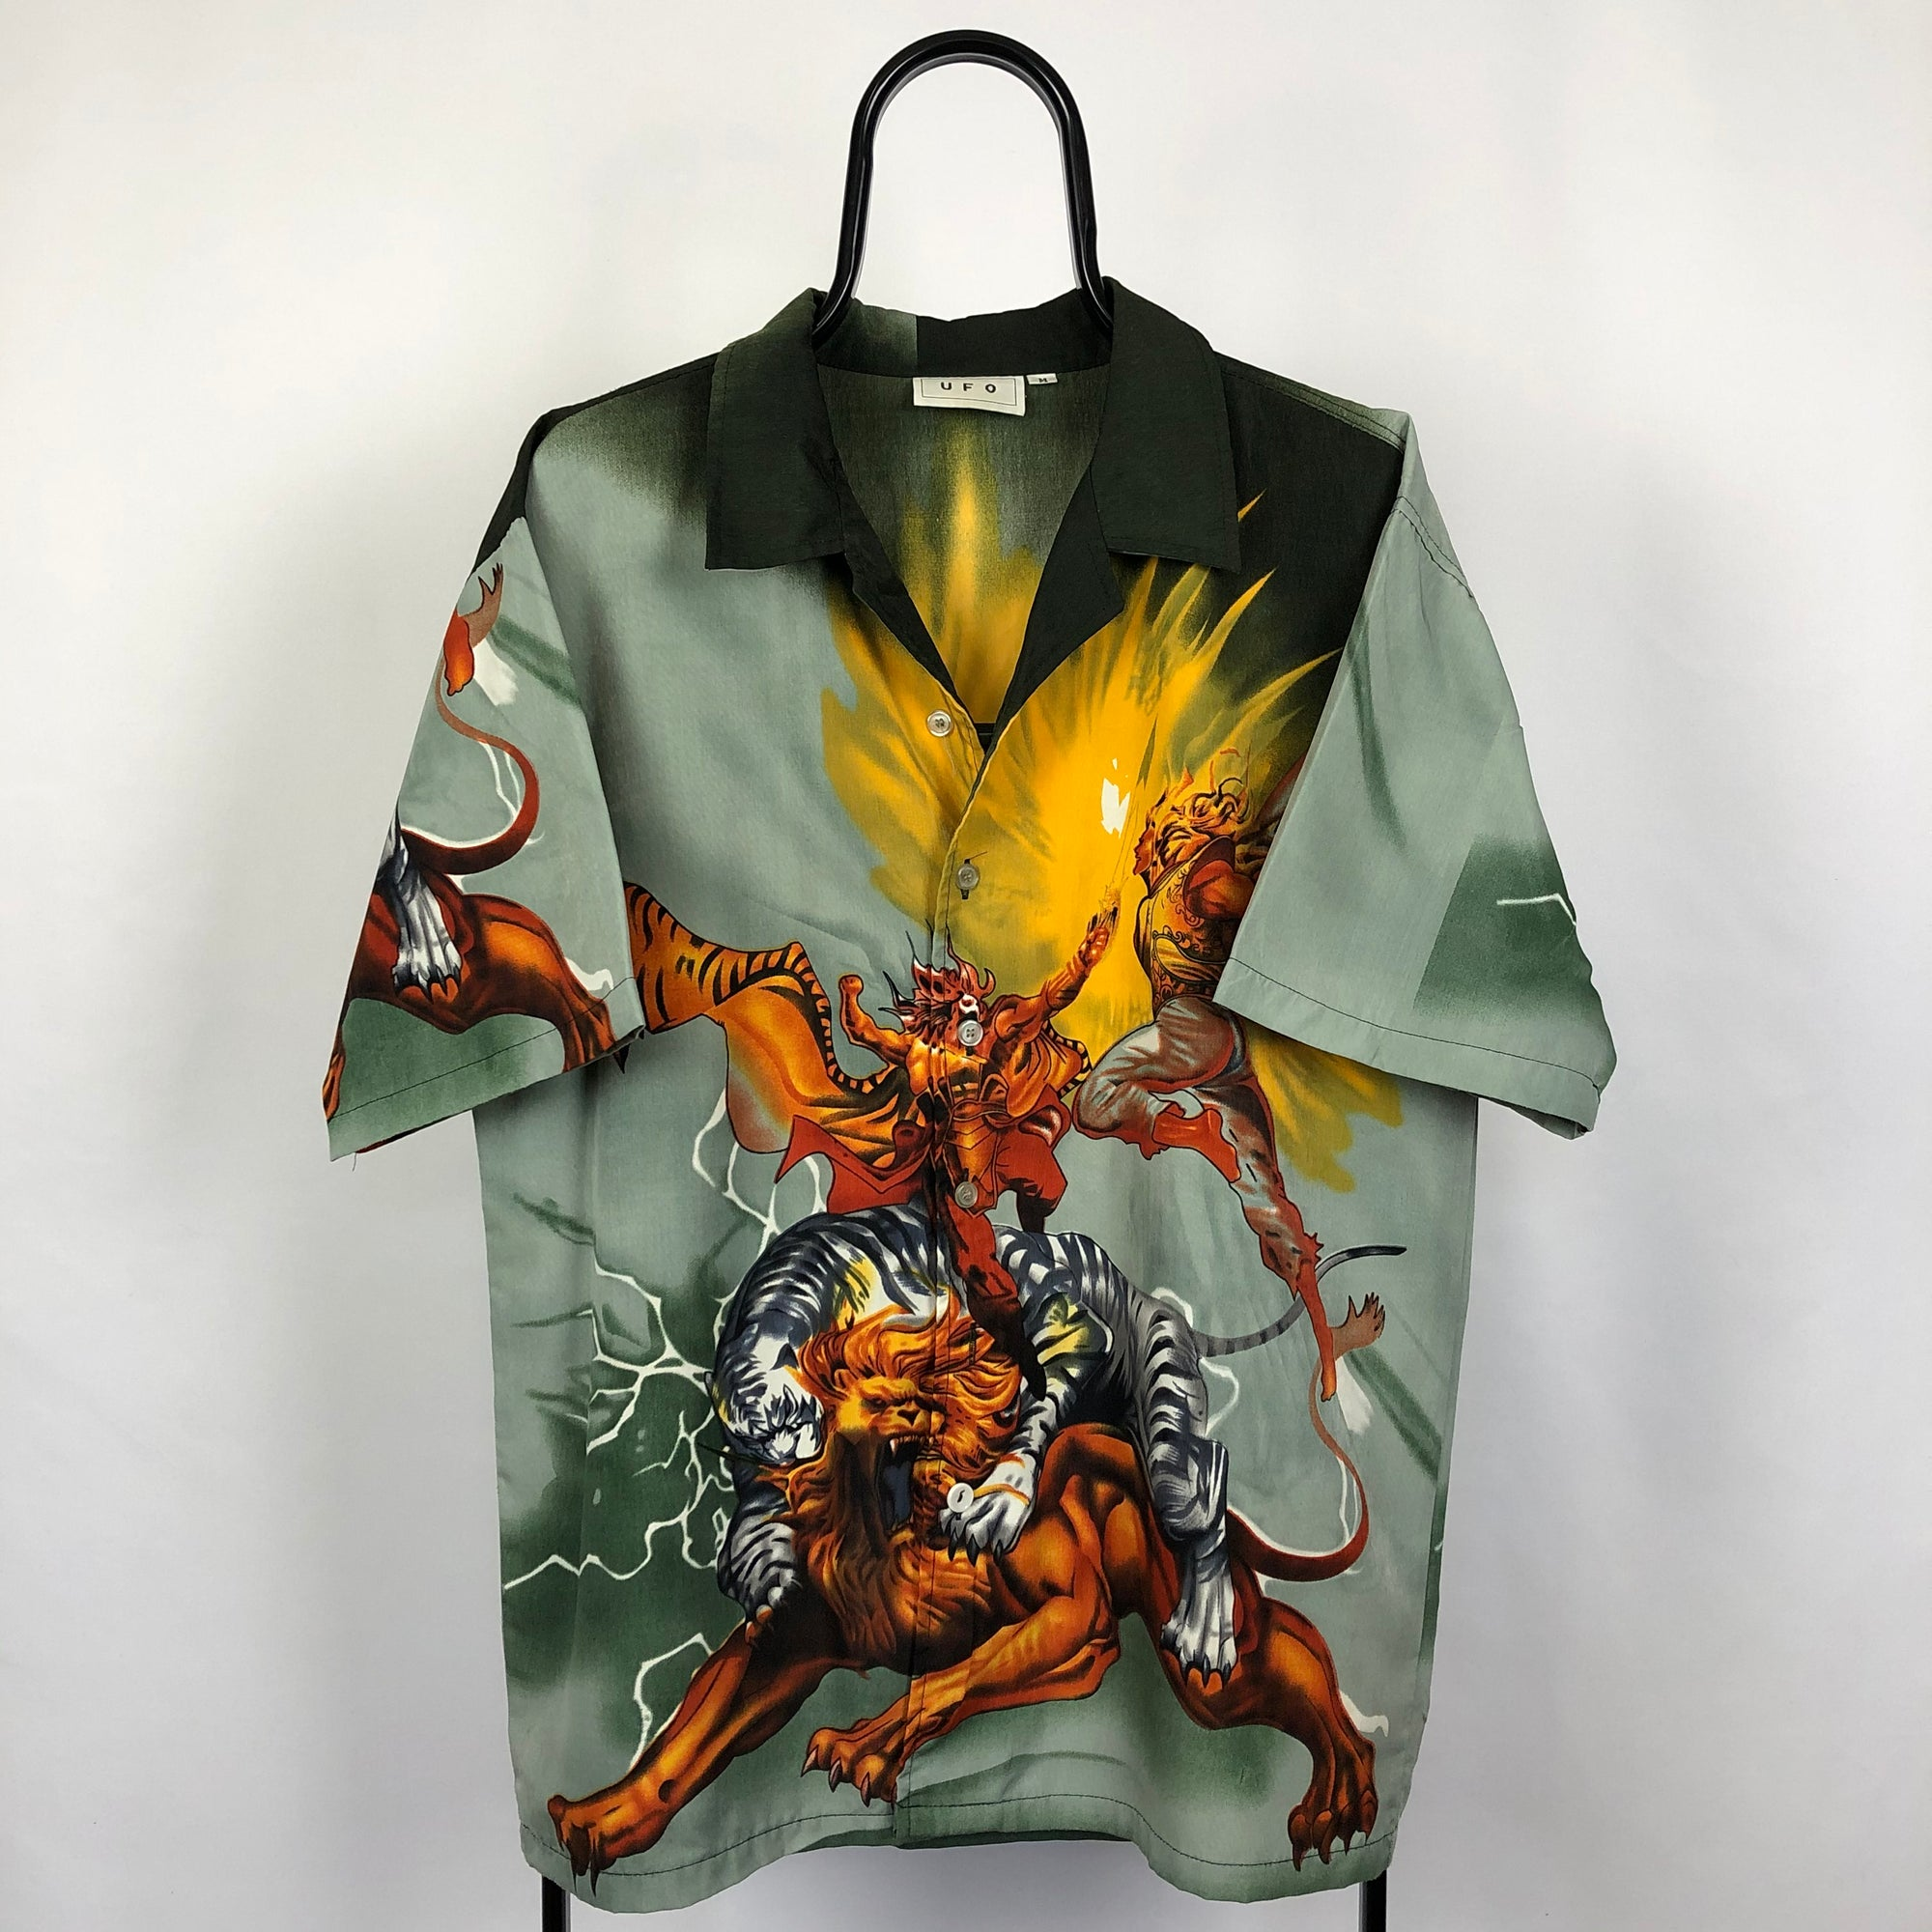 Tiger X Lion Anime Shirt - Men's Large/Women's XL